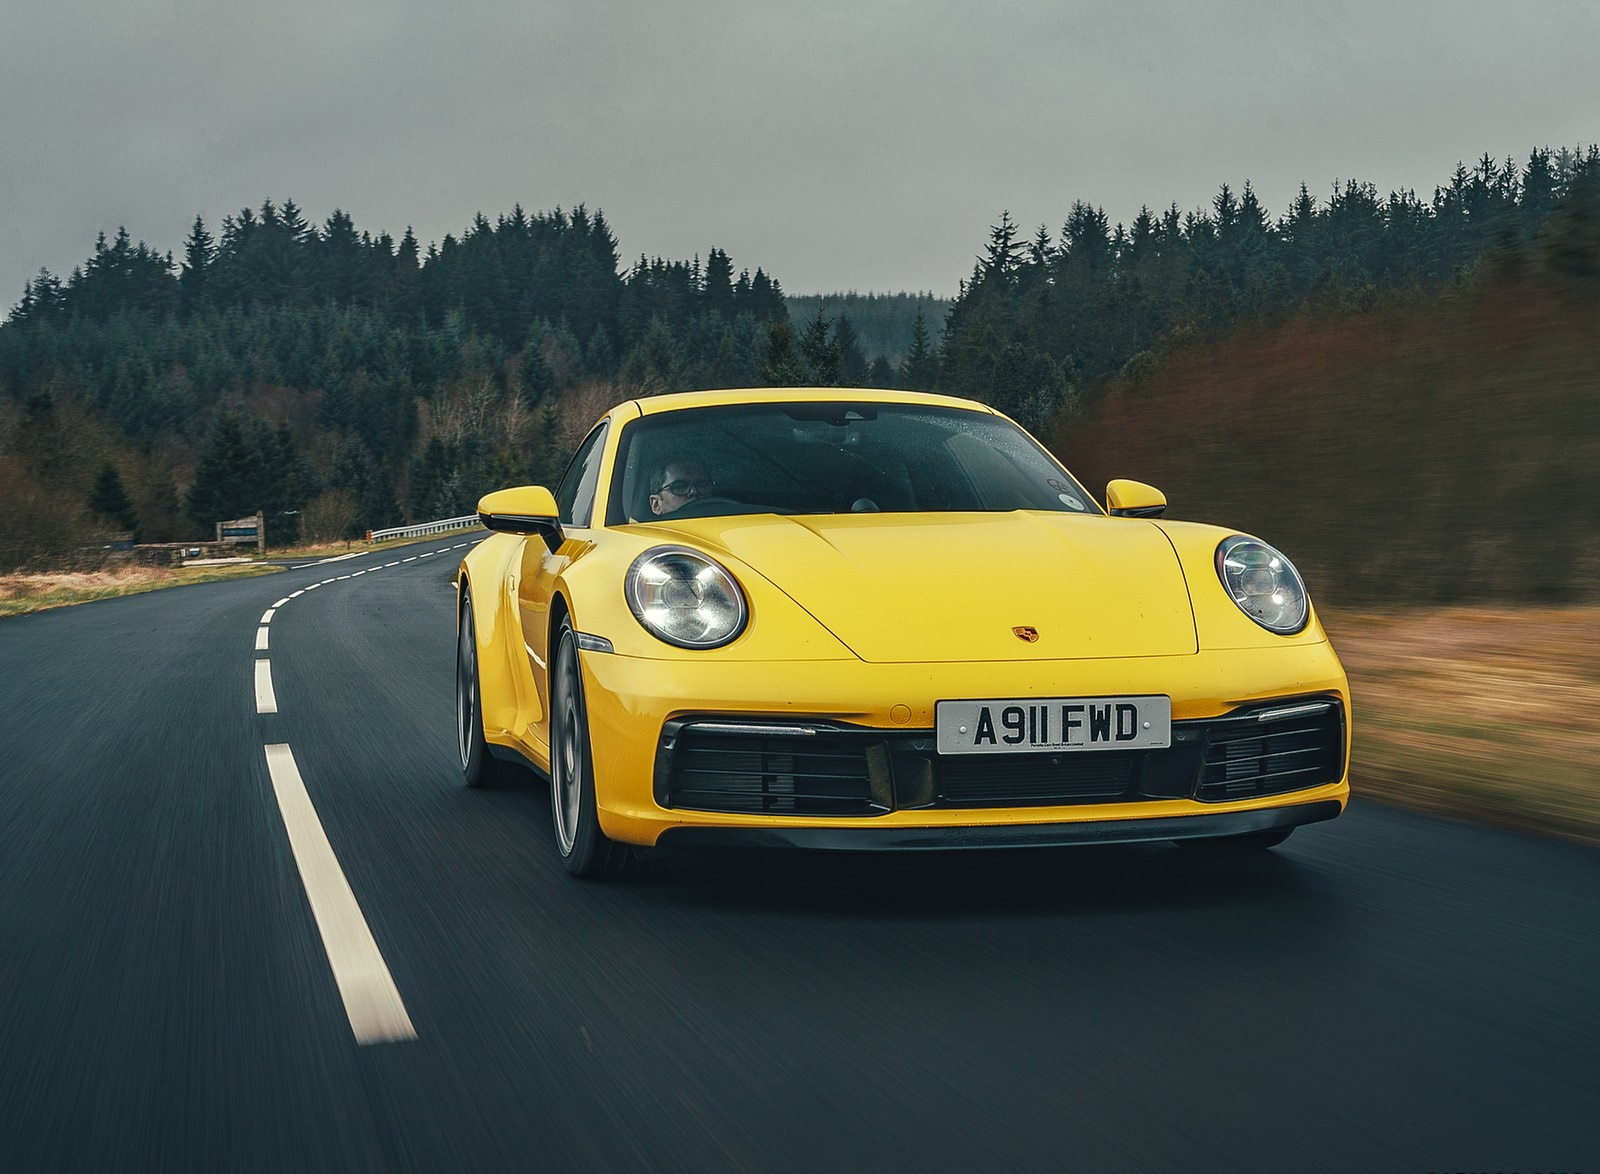 2019 Porsche 911 (992) Carrera 4S (UK-Spec) Front Wallpaper (1)